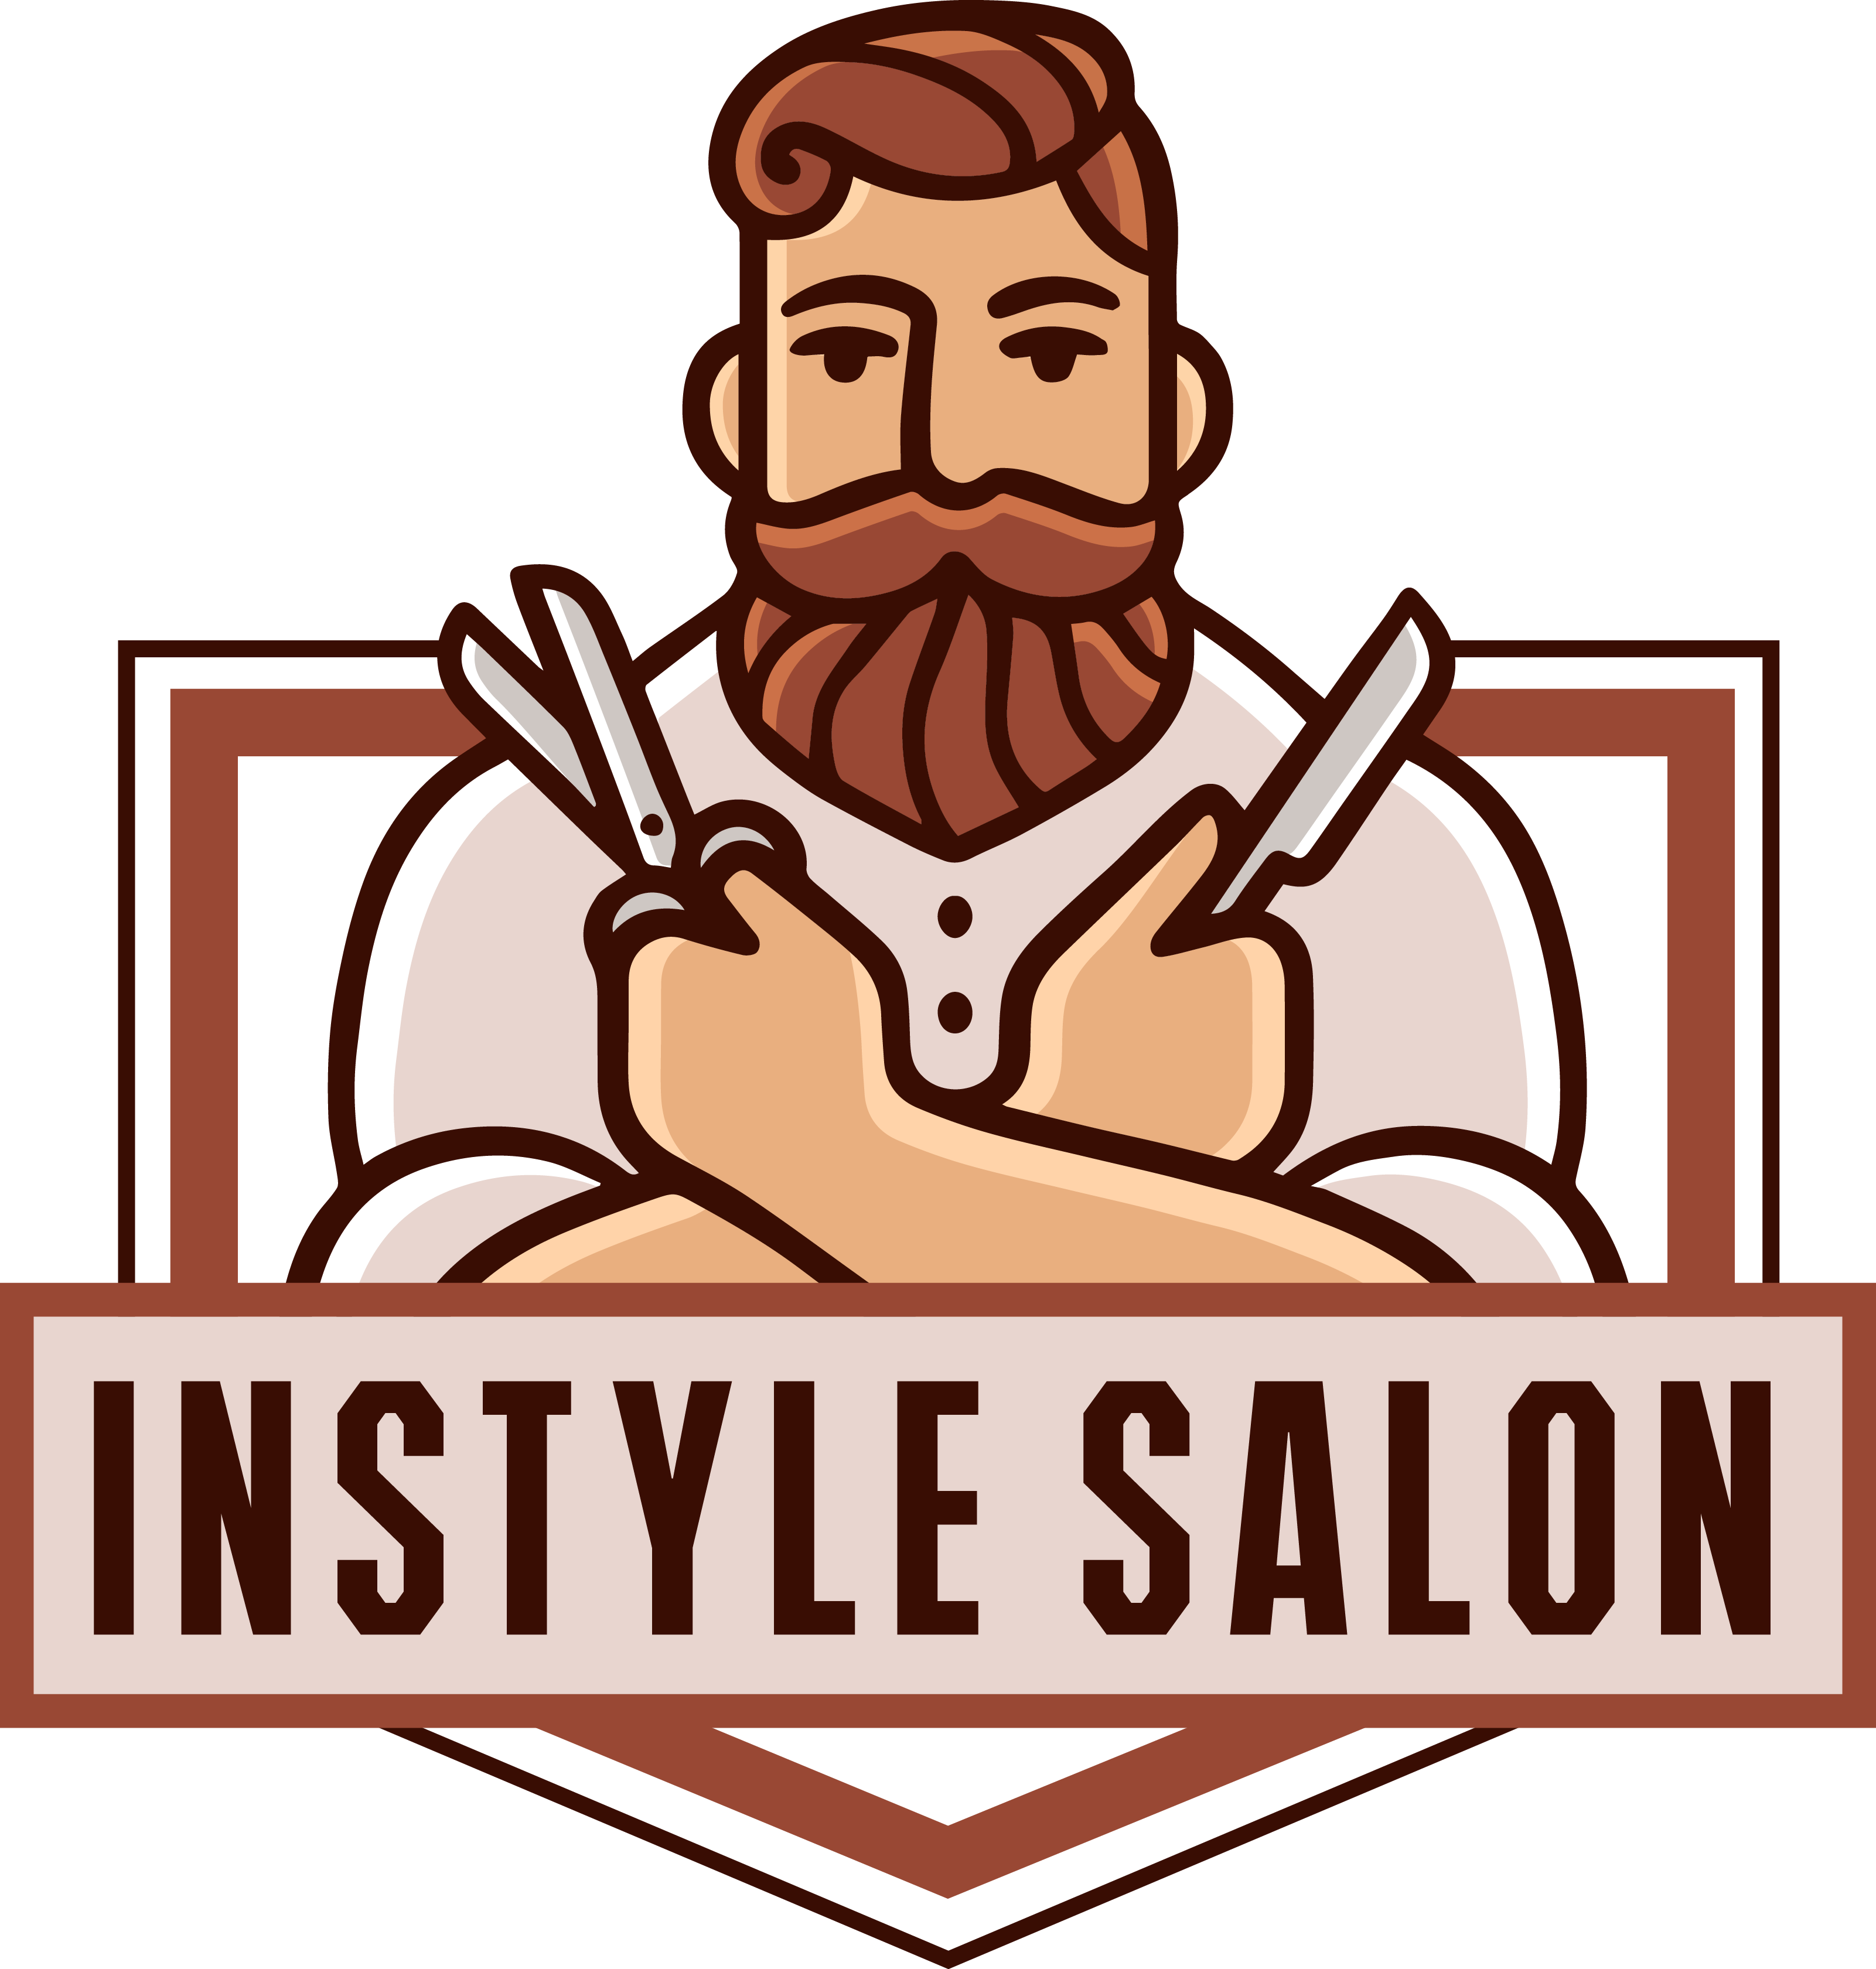 png Haircut clipart. Hair appointment free on.